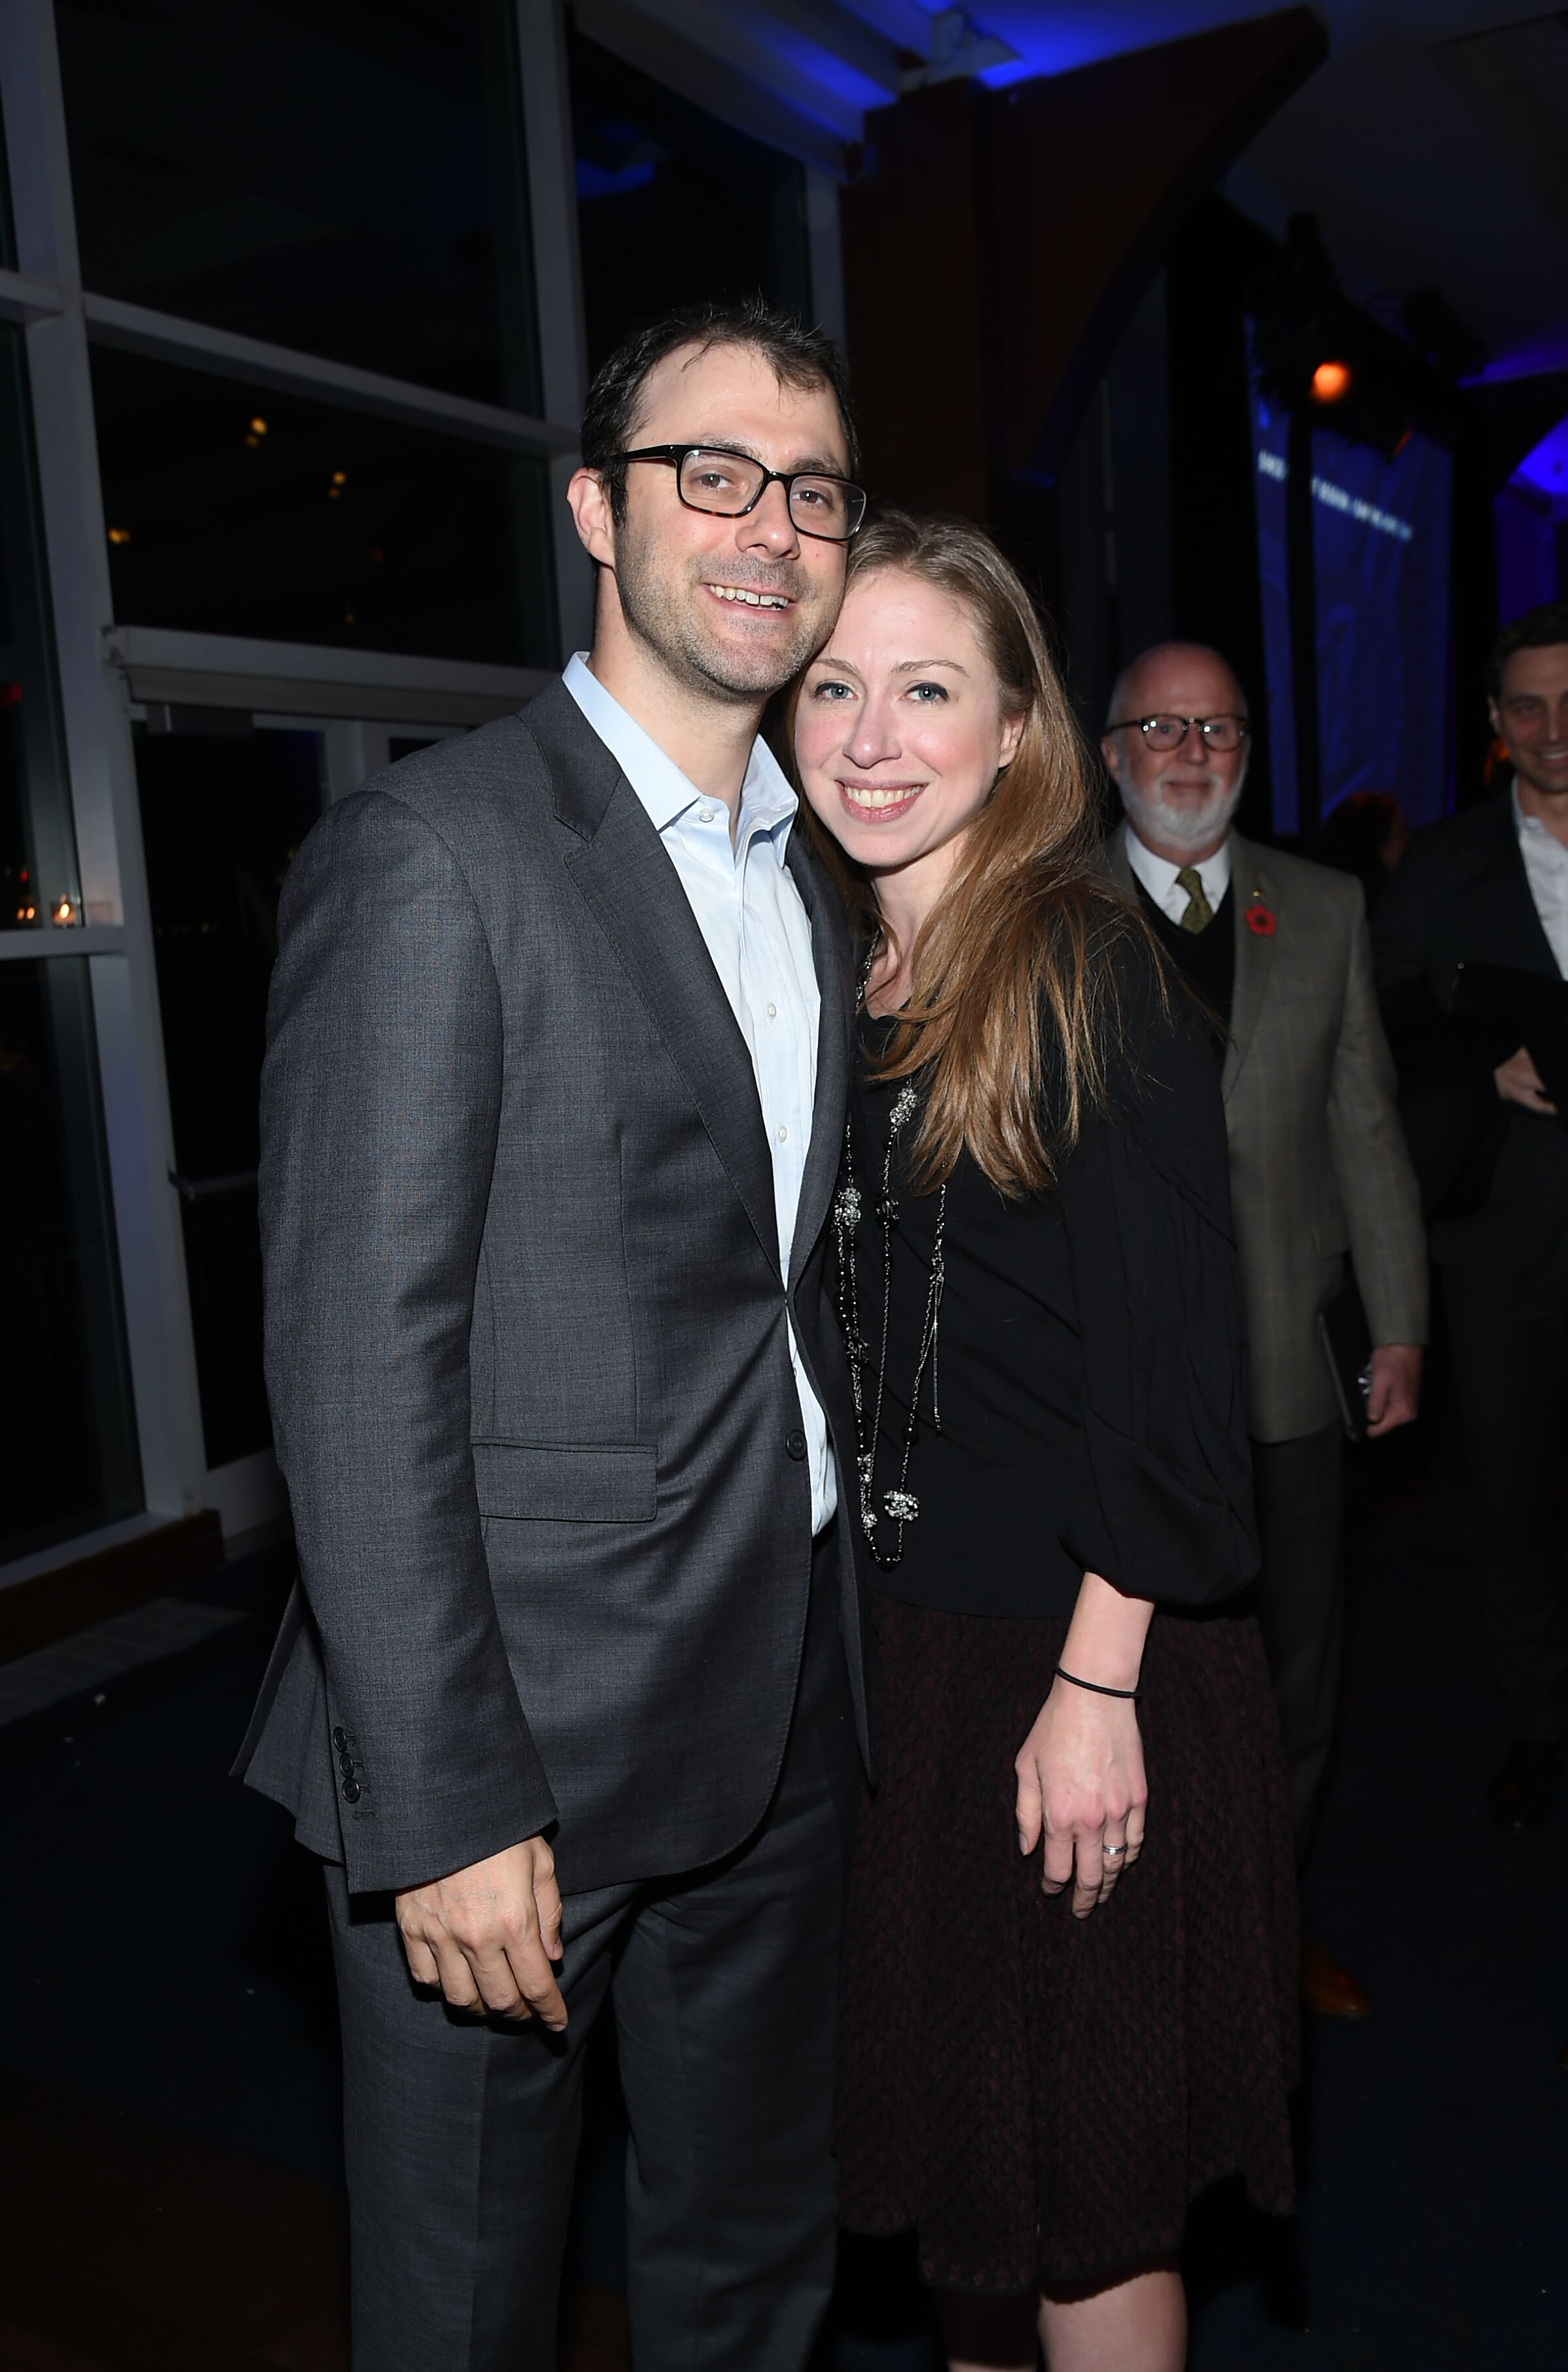 Chelsea Clinton and Marc Mezvinsky attend the Headstrong Gala 2017. | Source: Getty Images